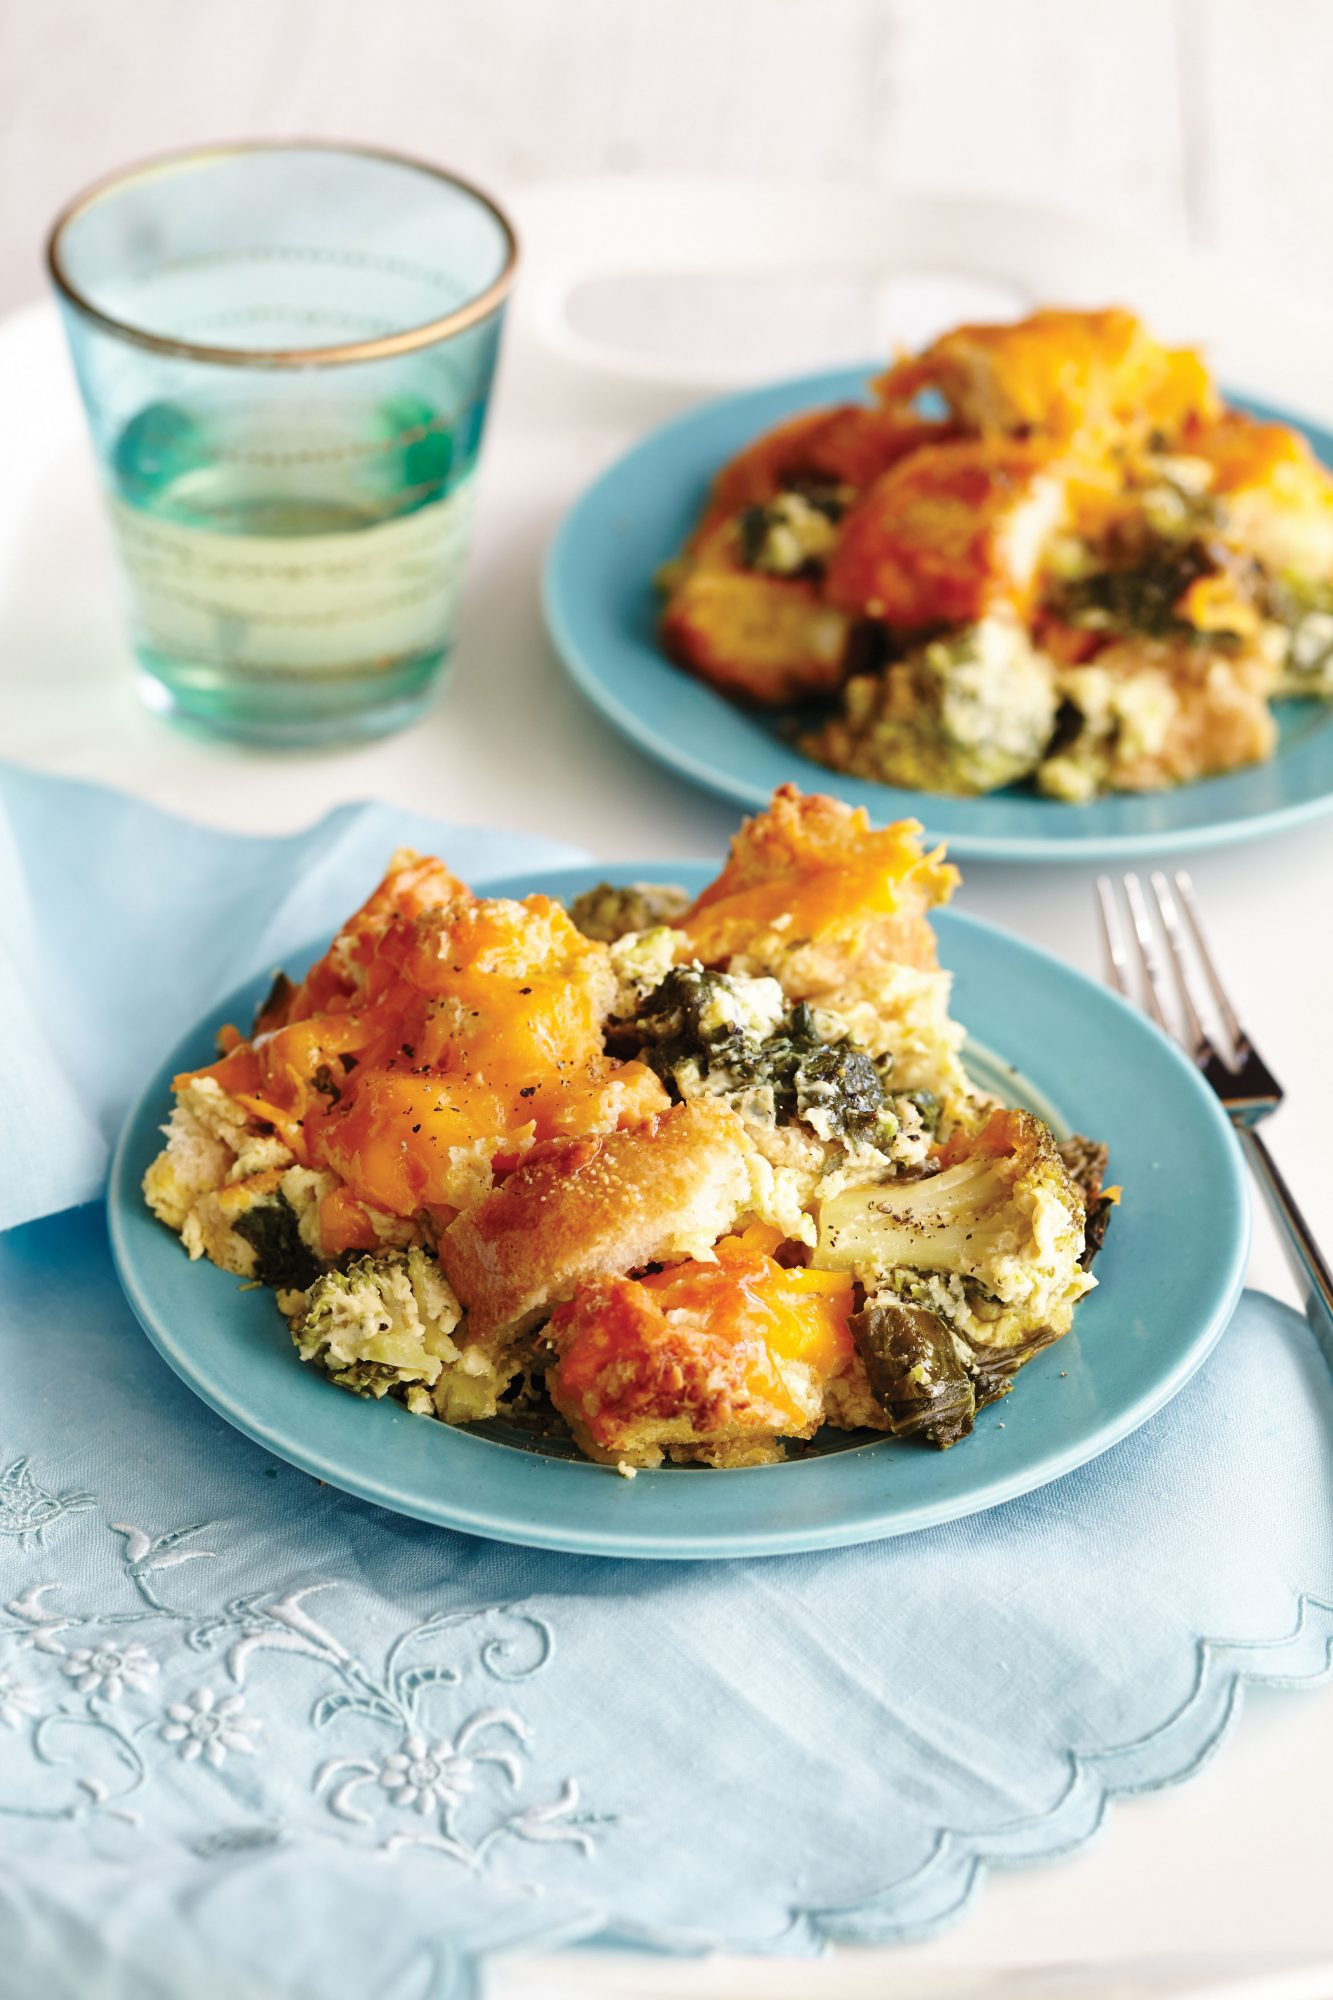 Spinach-and-Broccoli Breakfast Bread Pudding